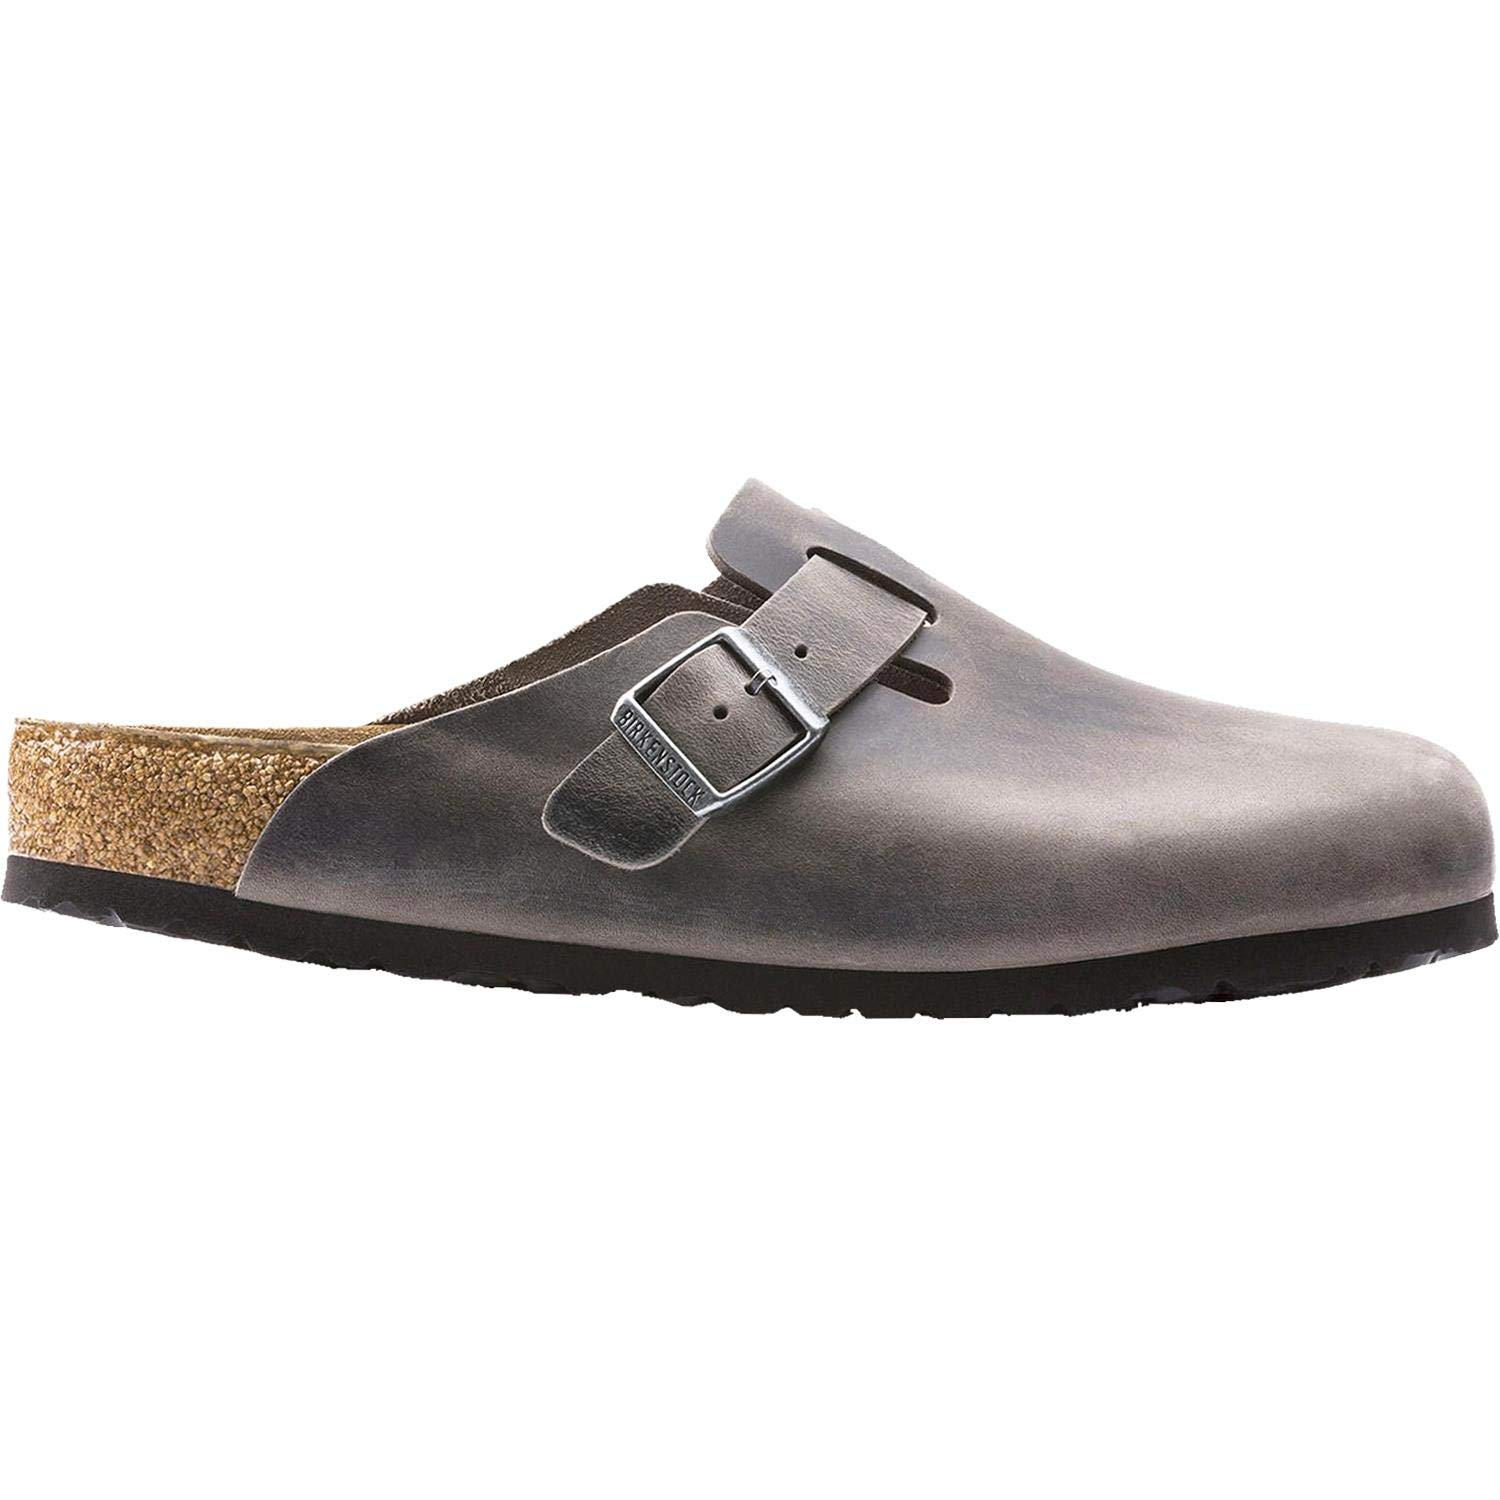 Birkenstock Unisex Boston Soft Footbed Iron Oiled Leather Clogs 41 R (US Women's 10-10.5)